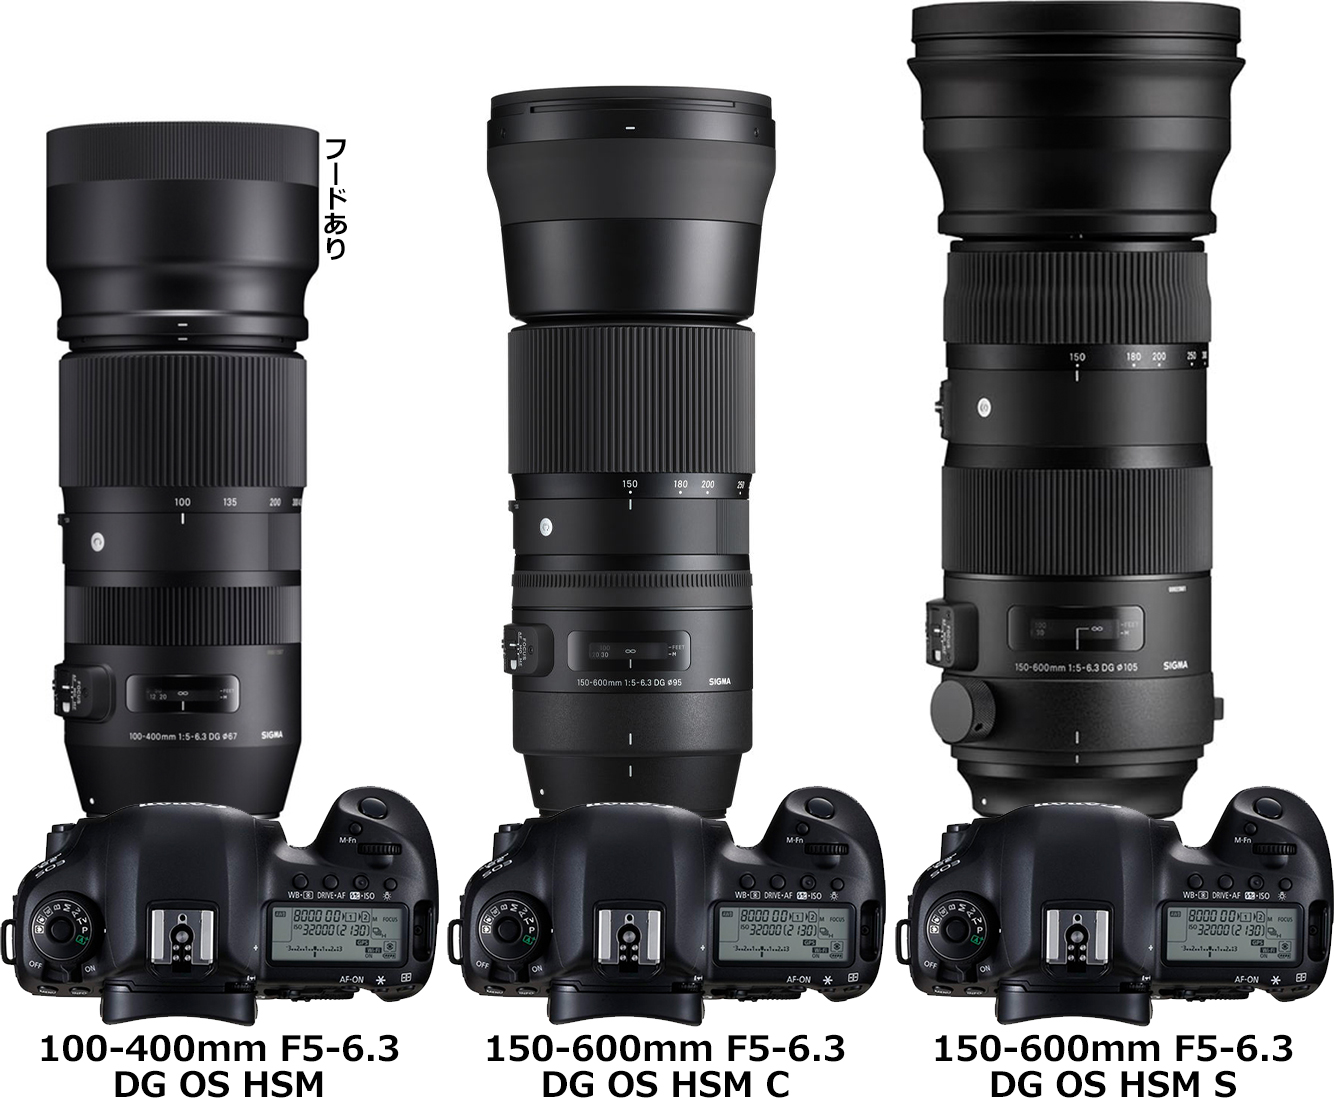 シグマ「100-400mm F5-6.3 DG OS HSM | Contemporary」と「150-600mm F5-6.3 DG OS HSM | Contemporary/Sports」 2